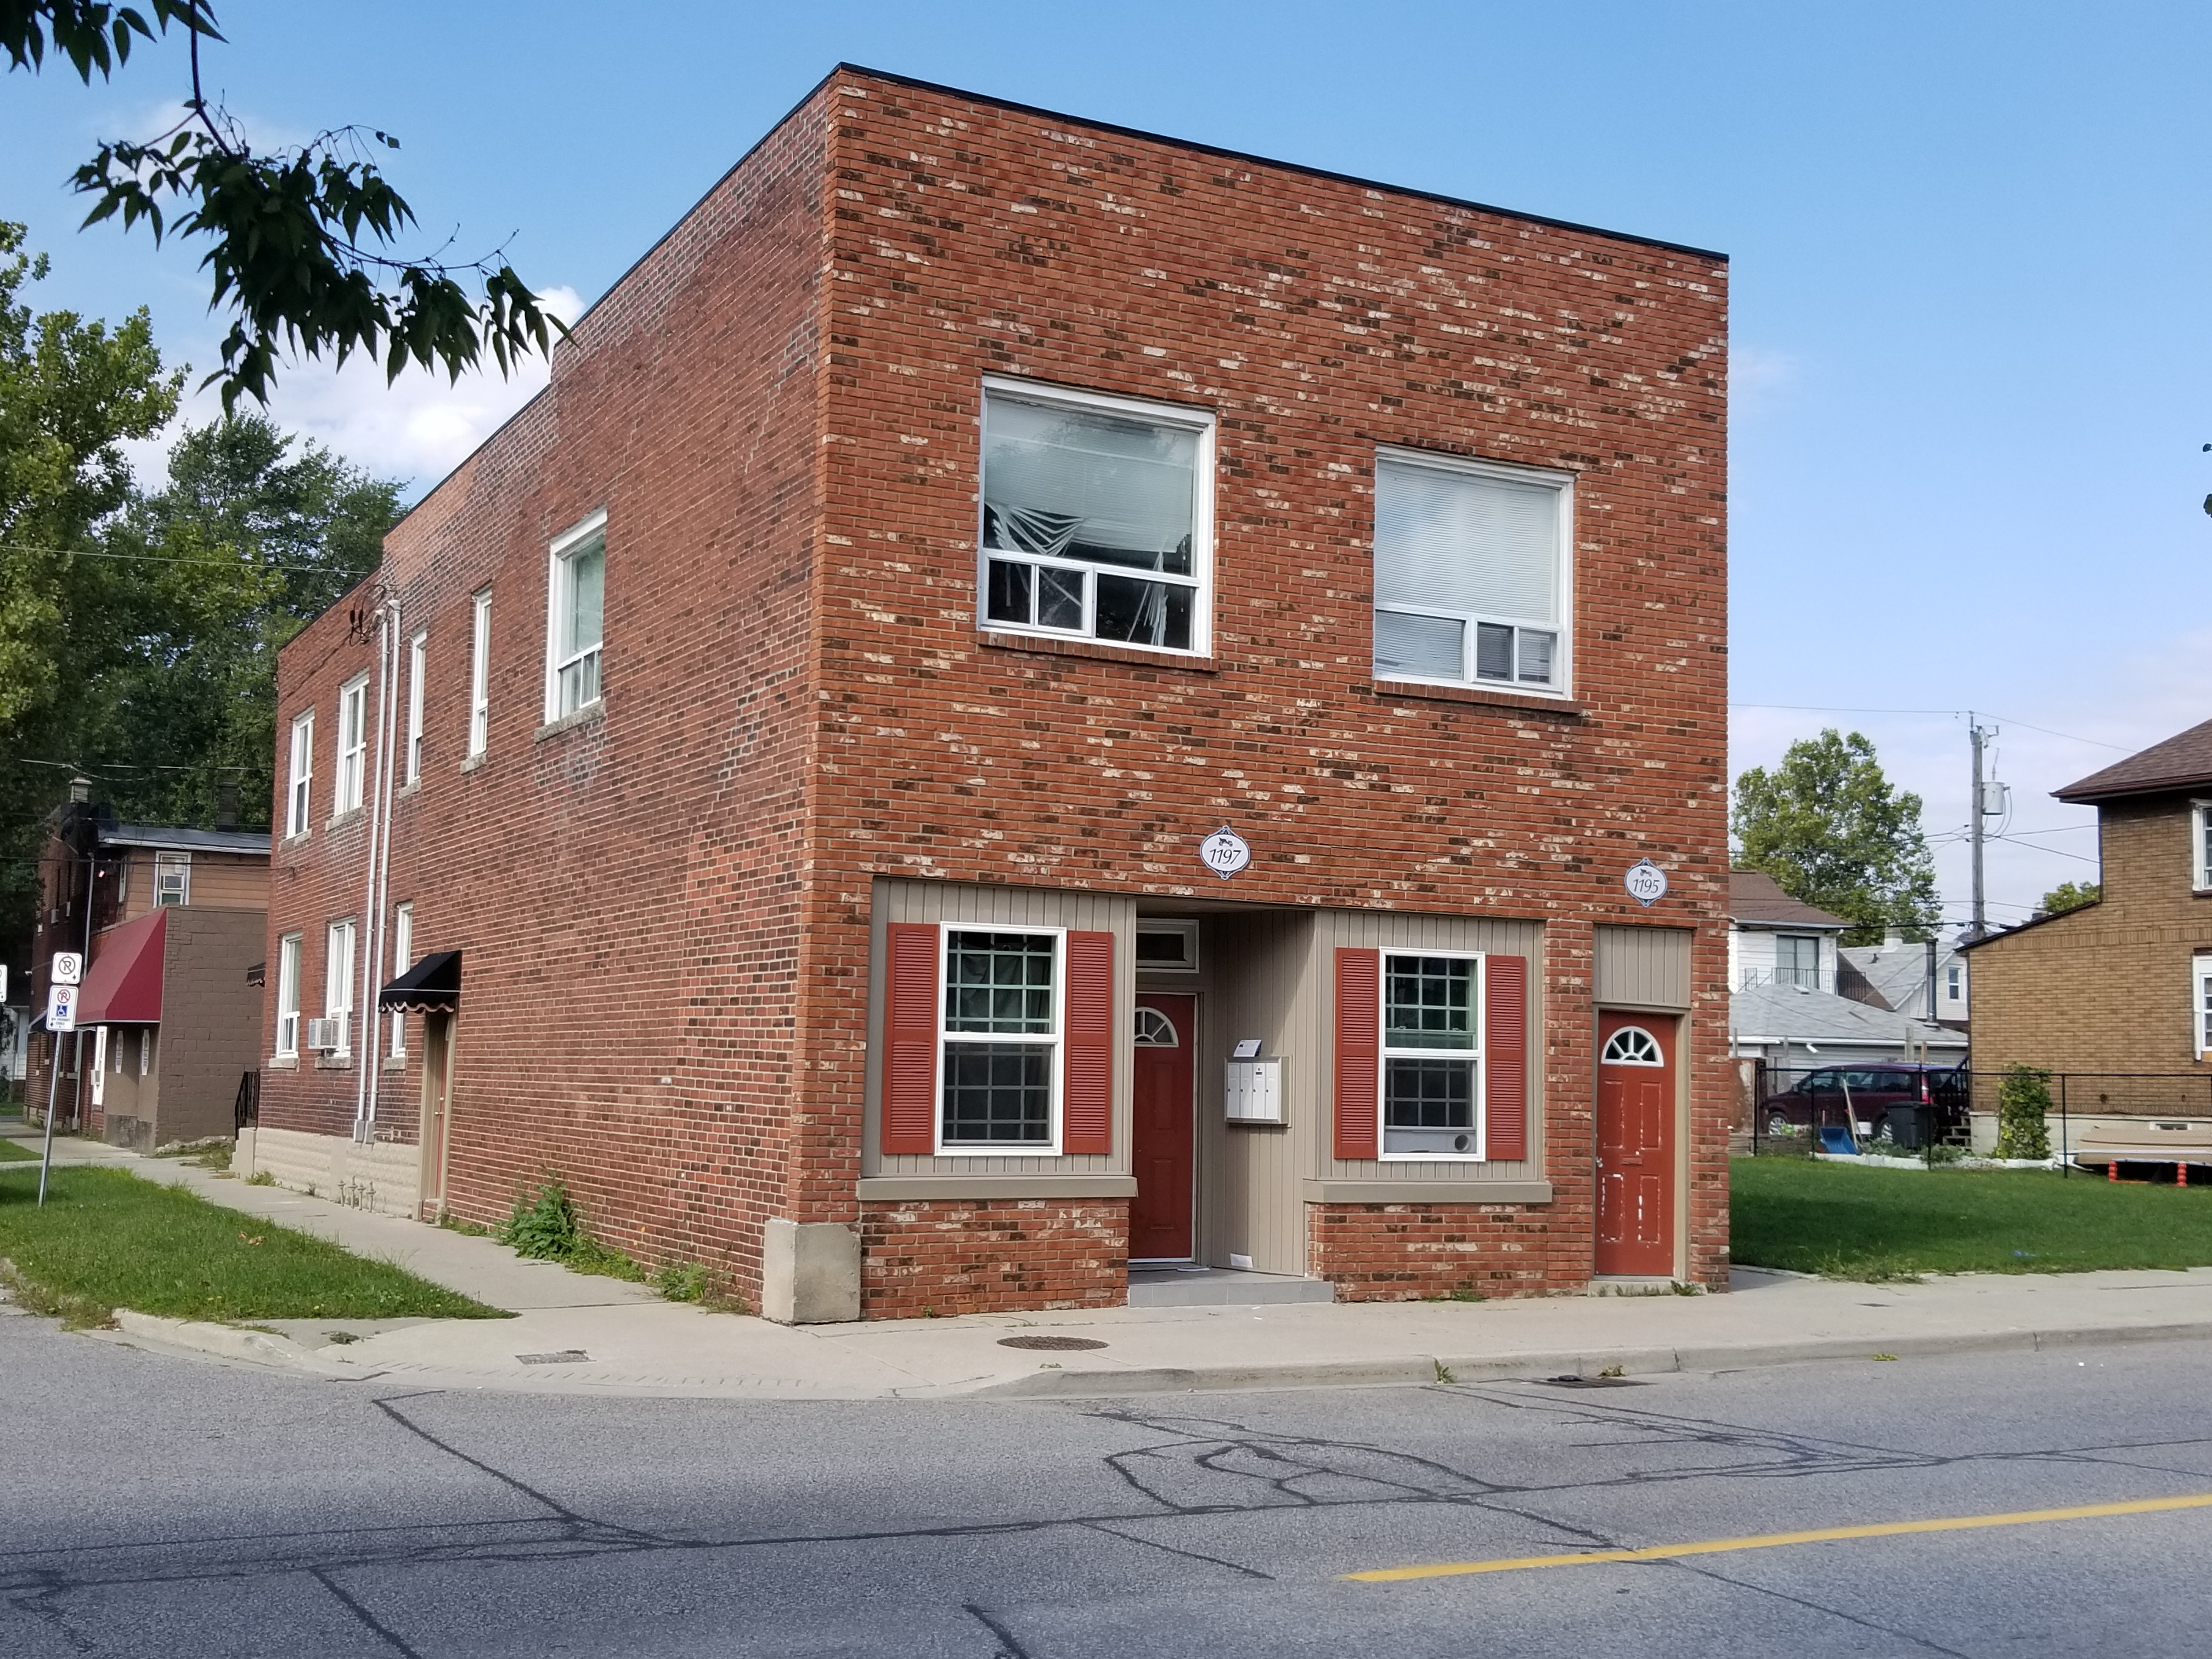 2 BEDROOM UPPER UNIT IN THE HEART OF FORD CITY